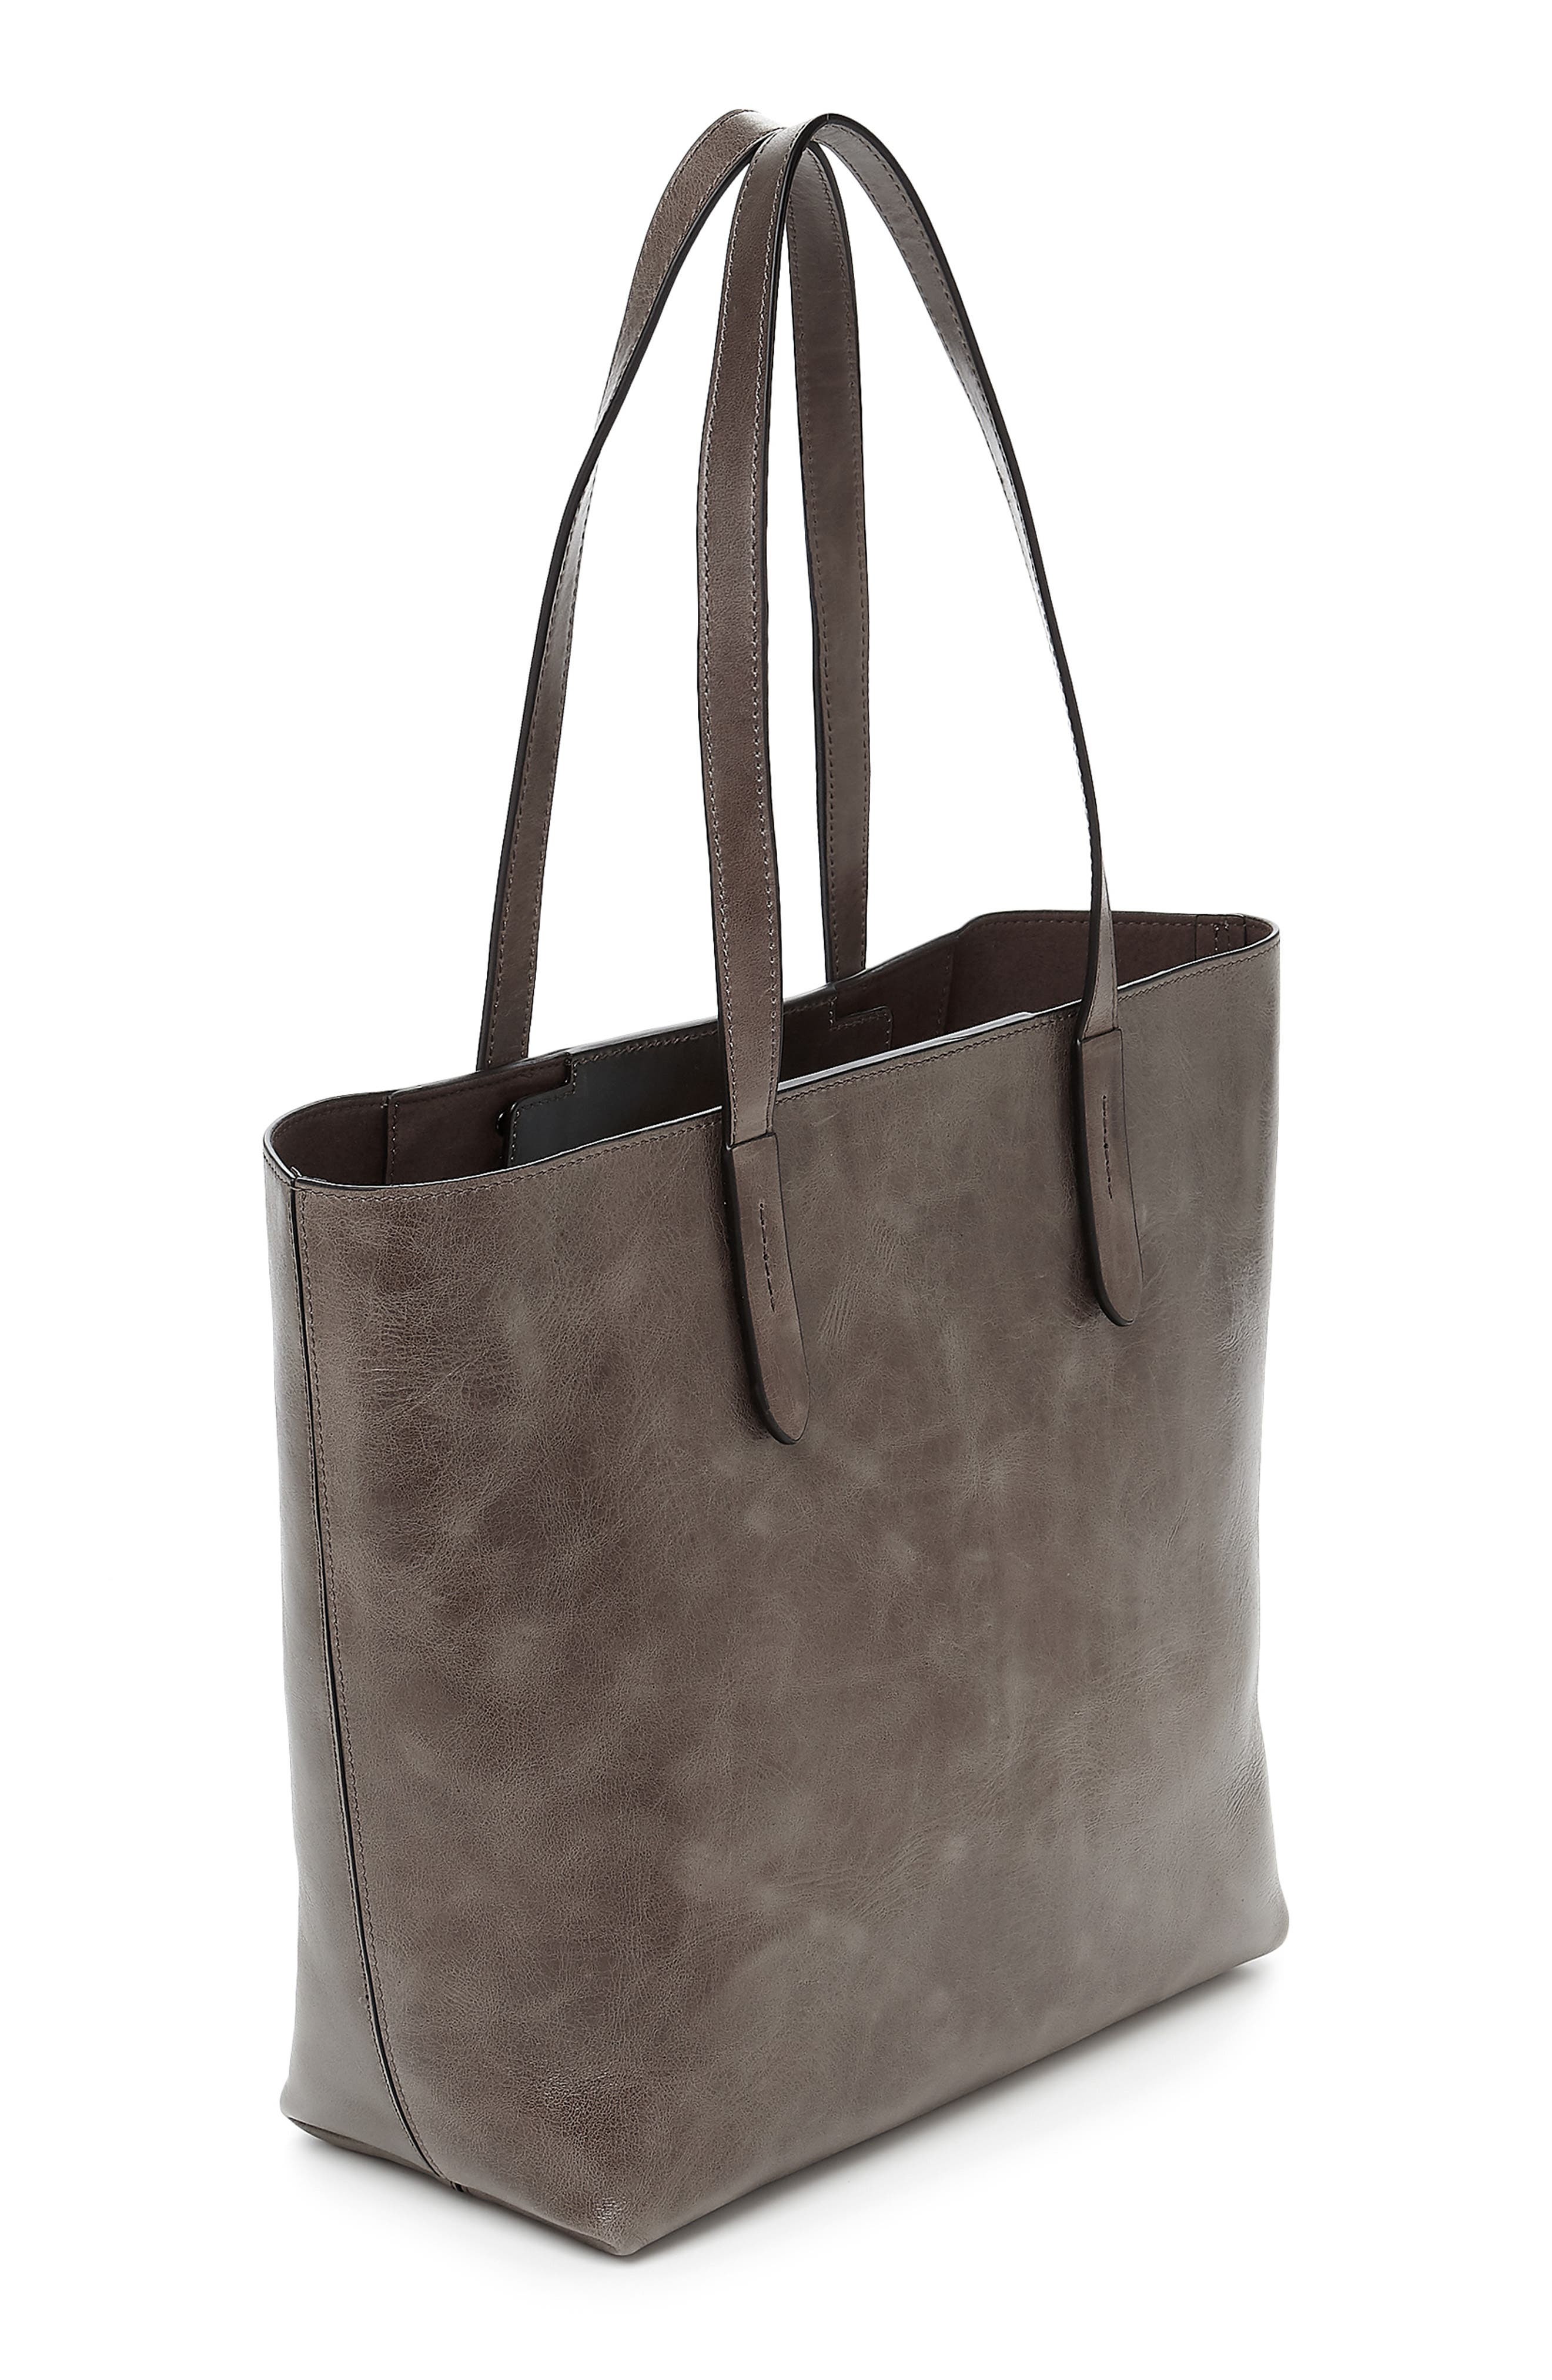 BOTKIER, Highline Leather Tote, Alternate thumbnail 2, color, WINTER GREY